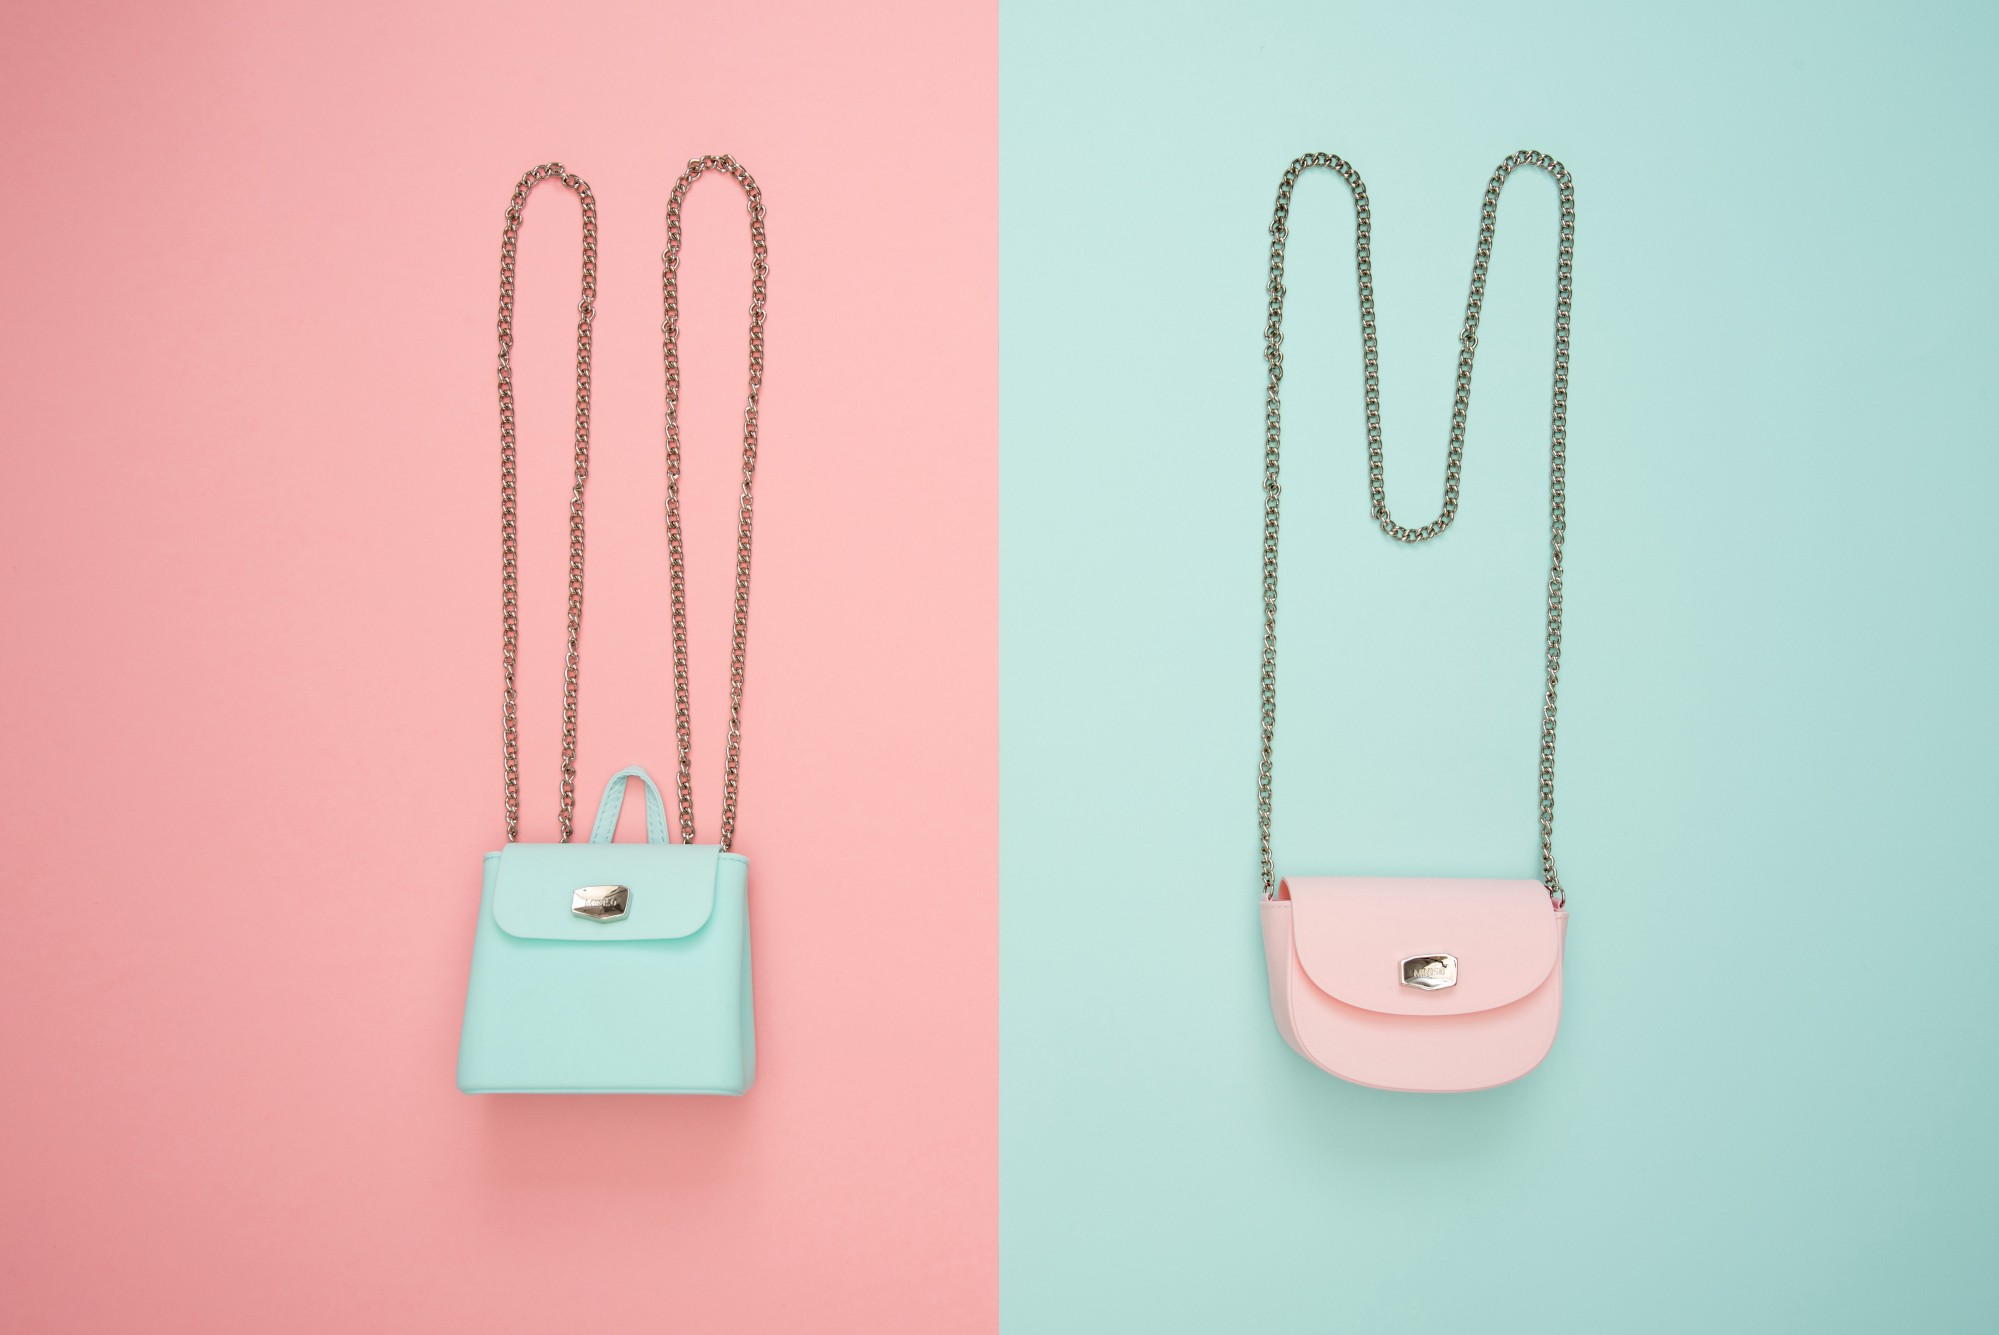 Two contrasting purses against contrasting backgrounds.